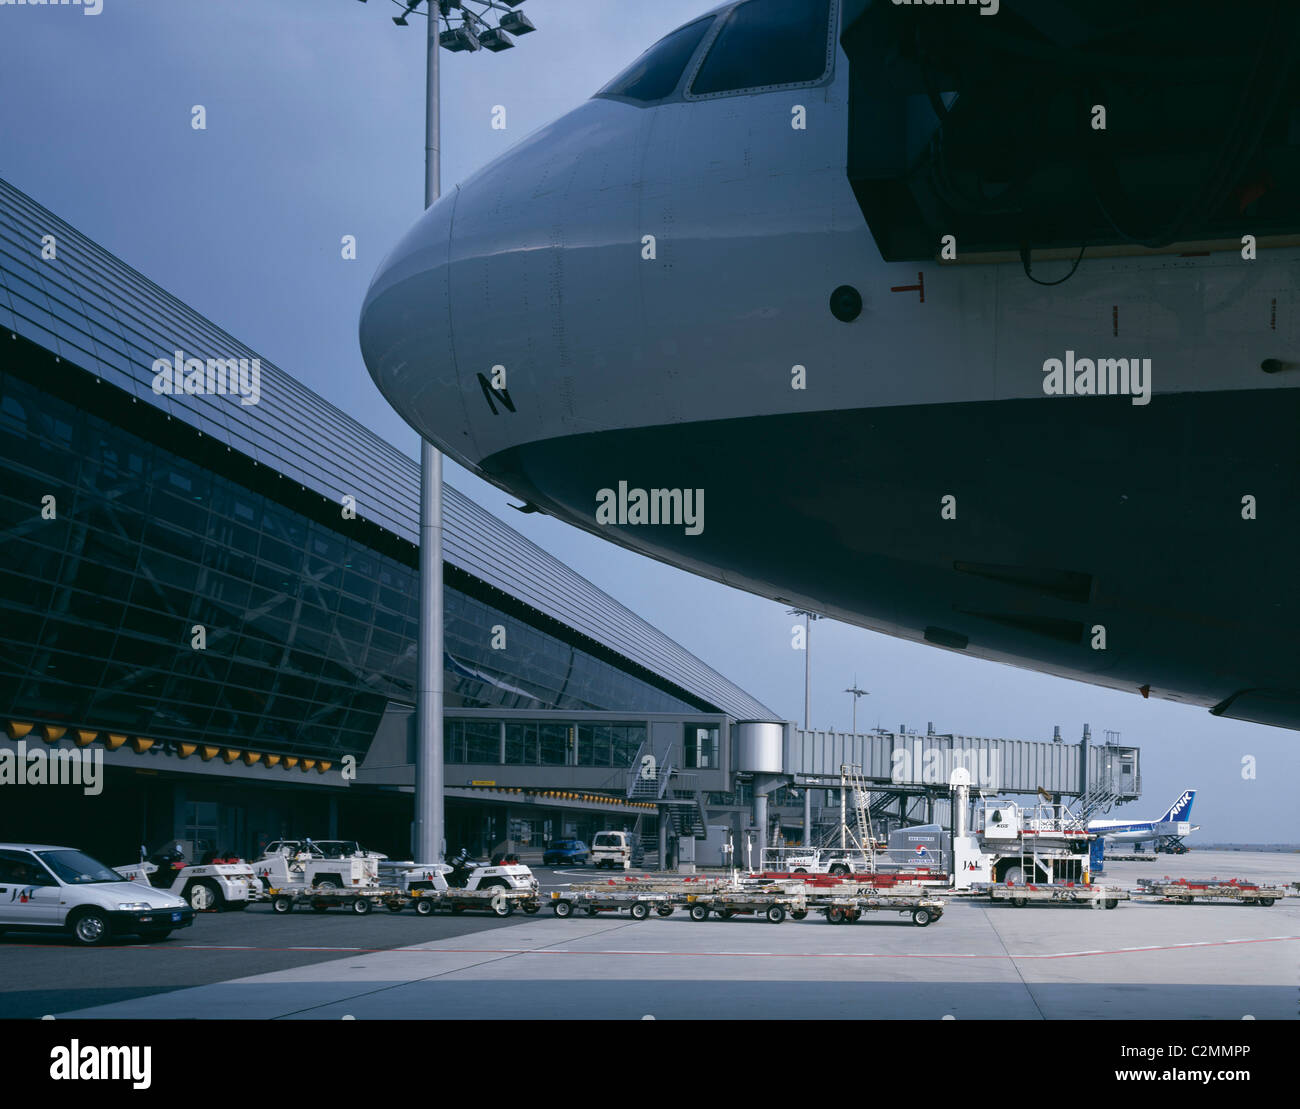 Kansai Airport, Osaka. Exterior with airplane in foreground. - Stock Image